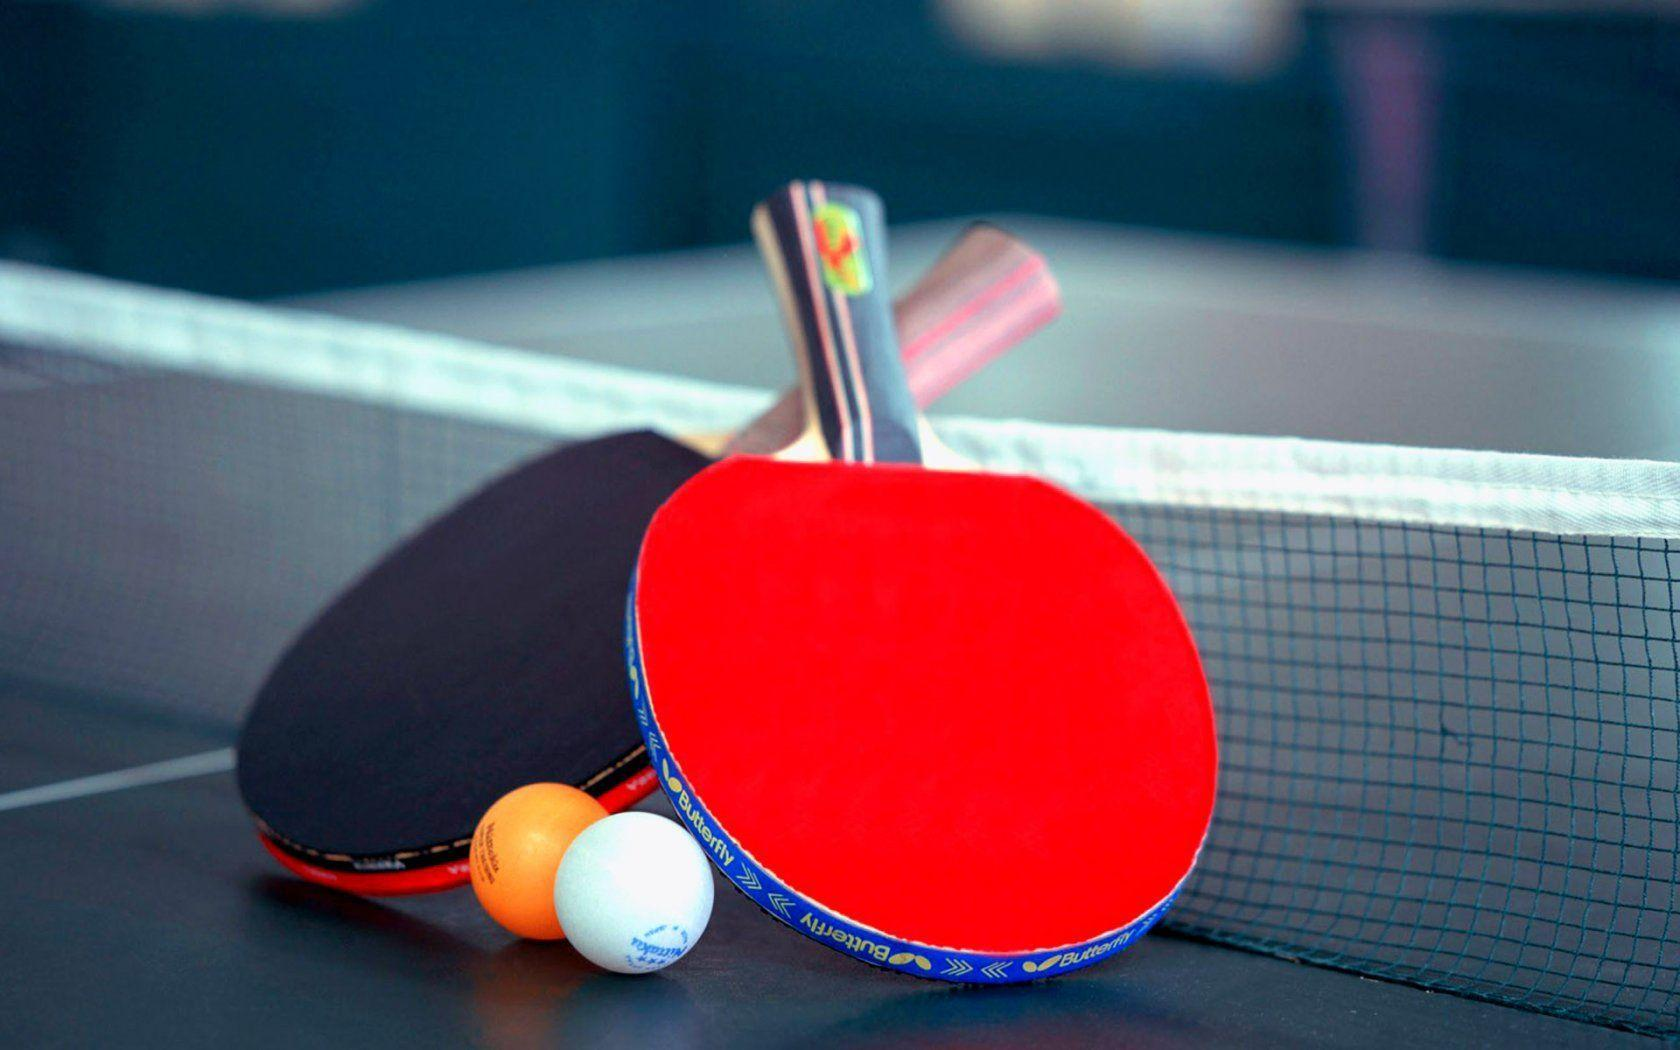 Table Tennis Wallpaper - WallpaperSafari